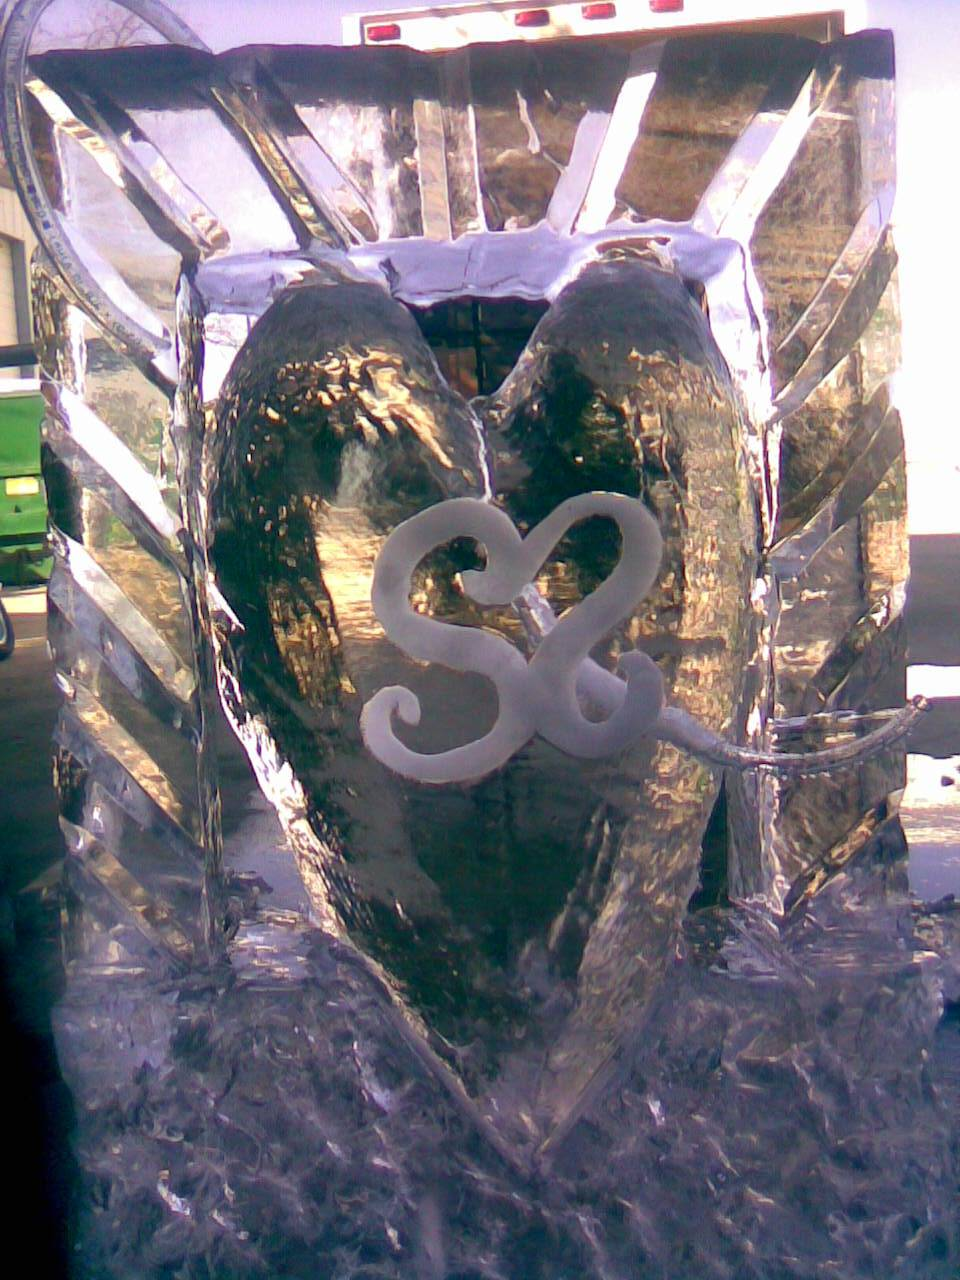 Initials on heart with luge